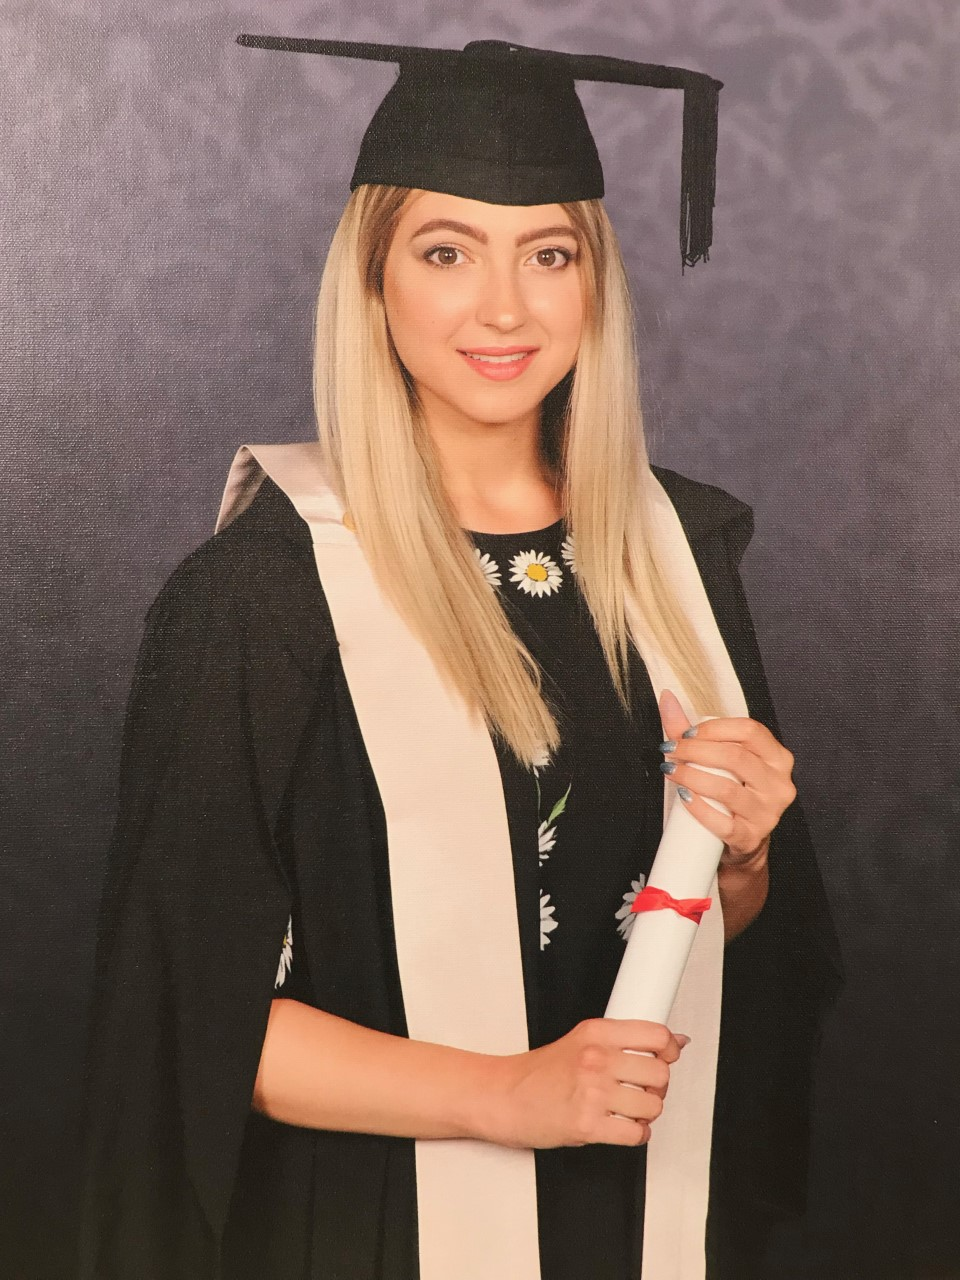 Xenia with graduation gown in front of grey background